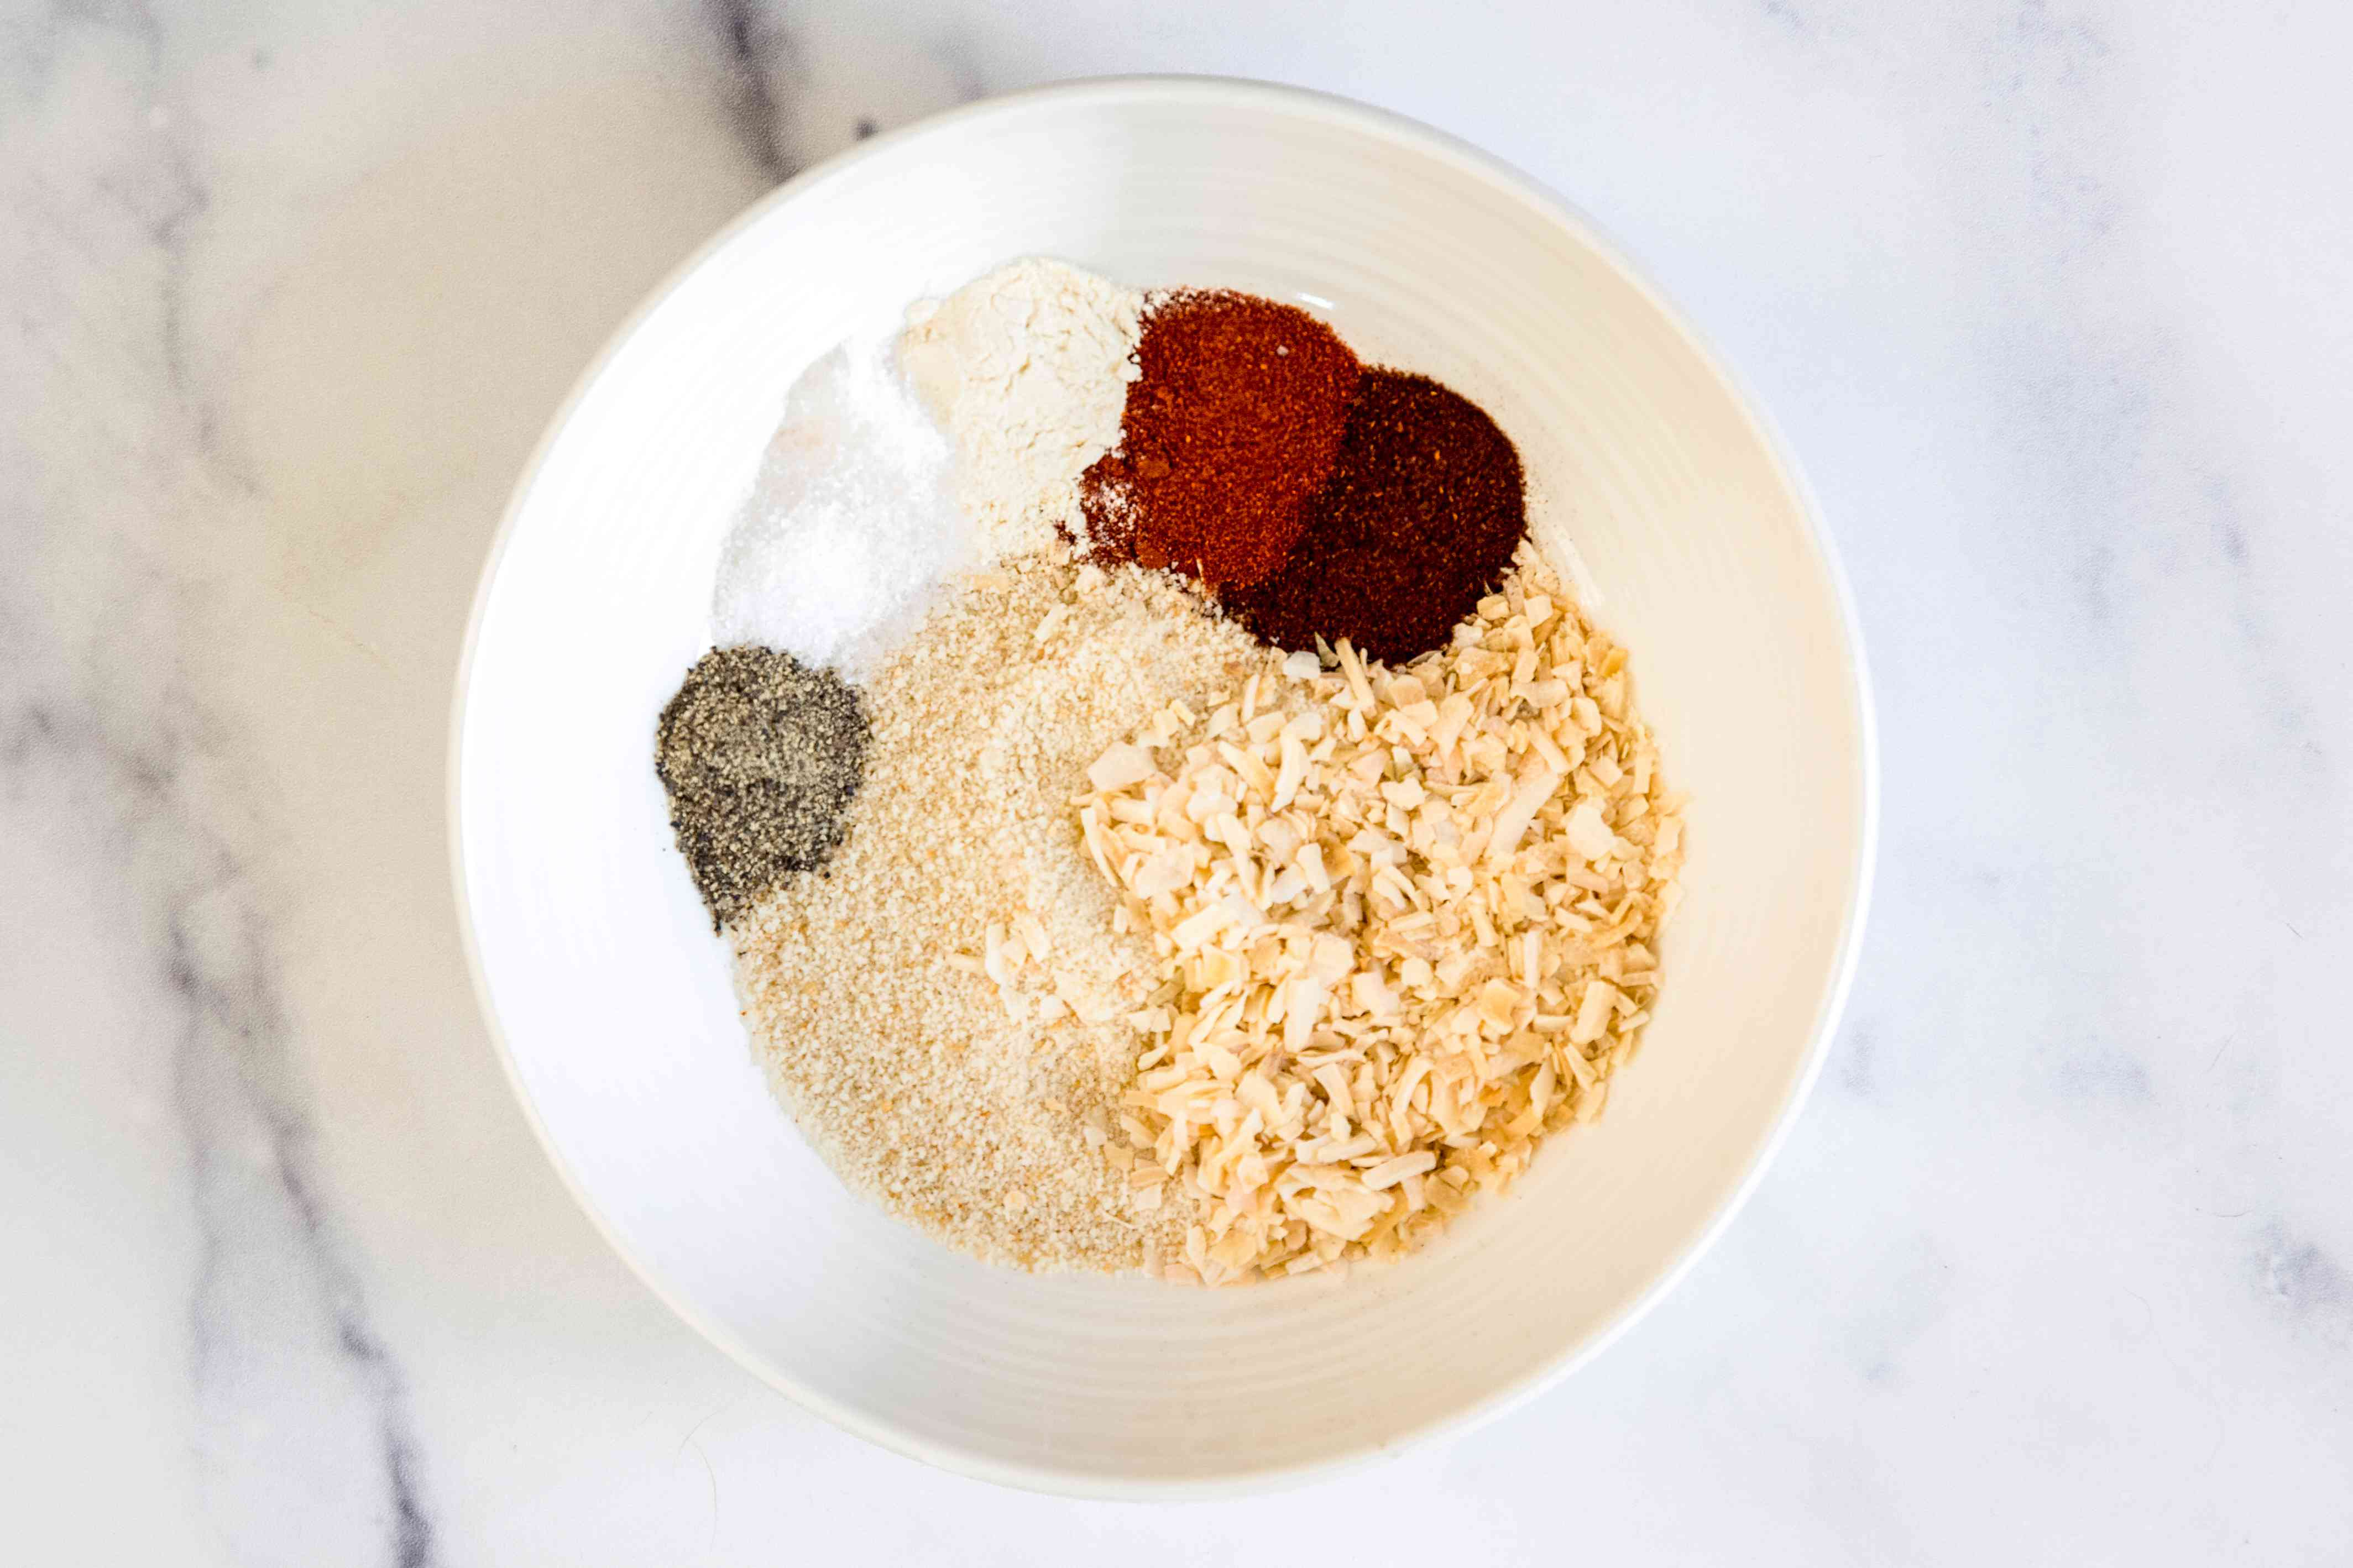 Spices and breadcrumbs in a bowl to make mini meatloaves with veg and potatoes in a sheet pan.